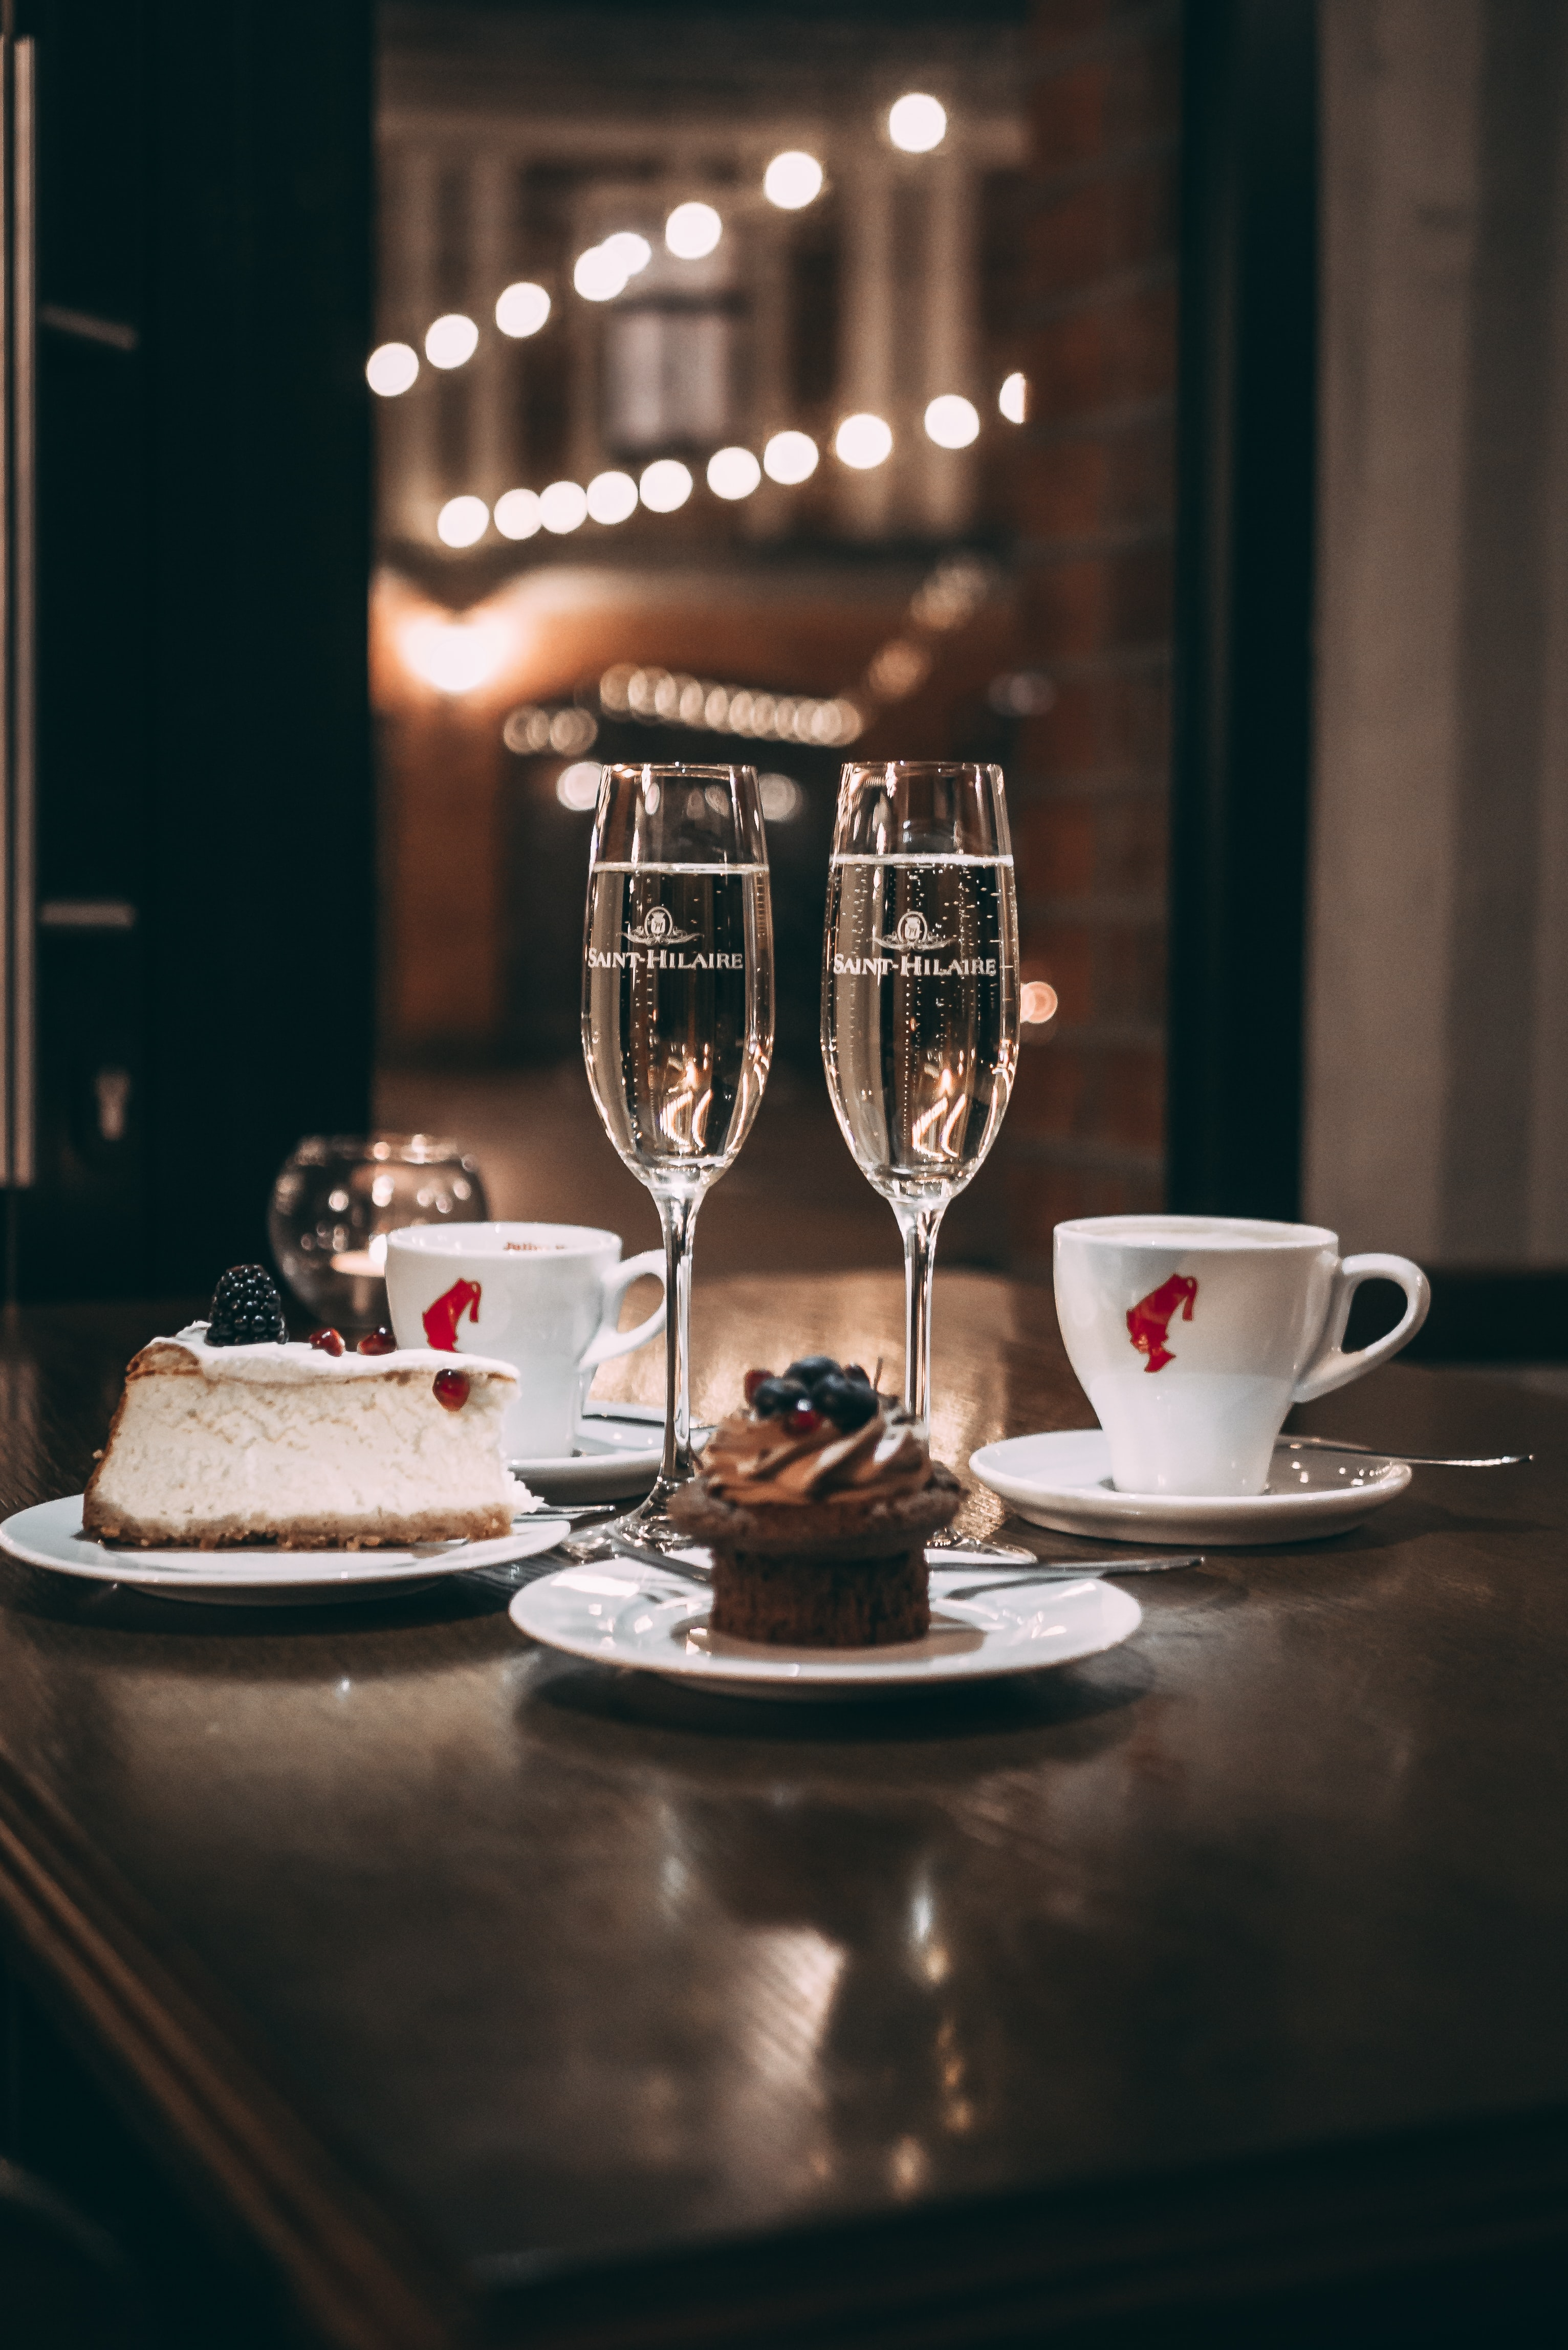 two champagne flute glass beside sliced cake and cupcake